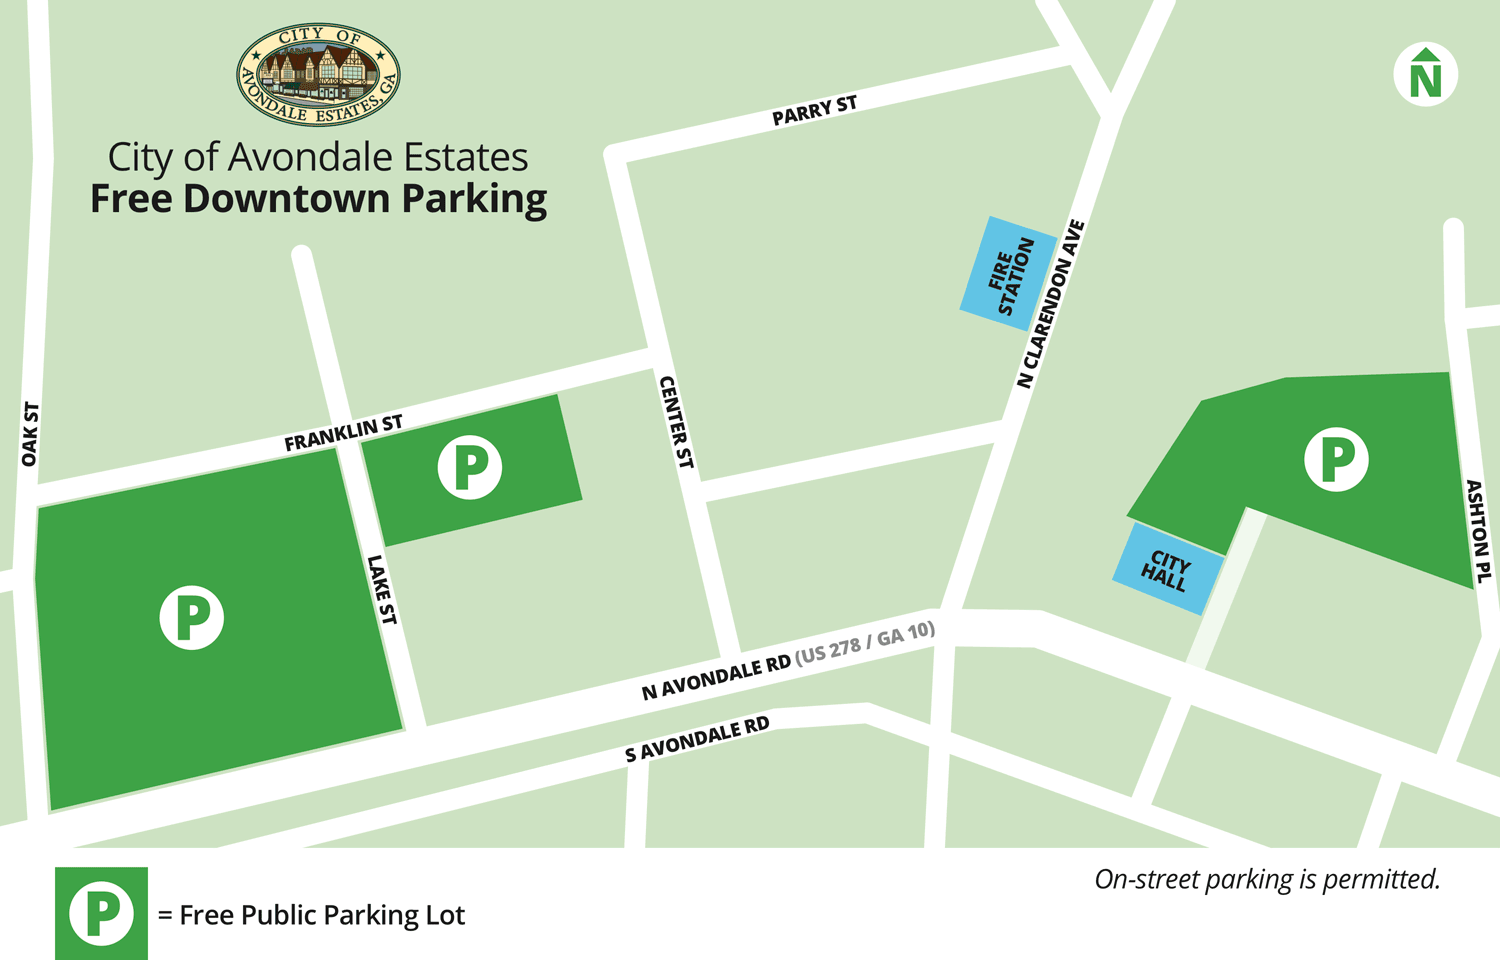 Map showing free public parking allowed in several City-owned downtown lots